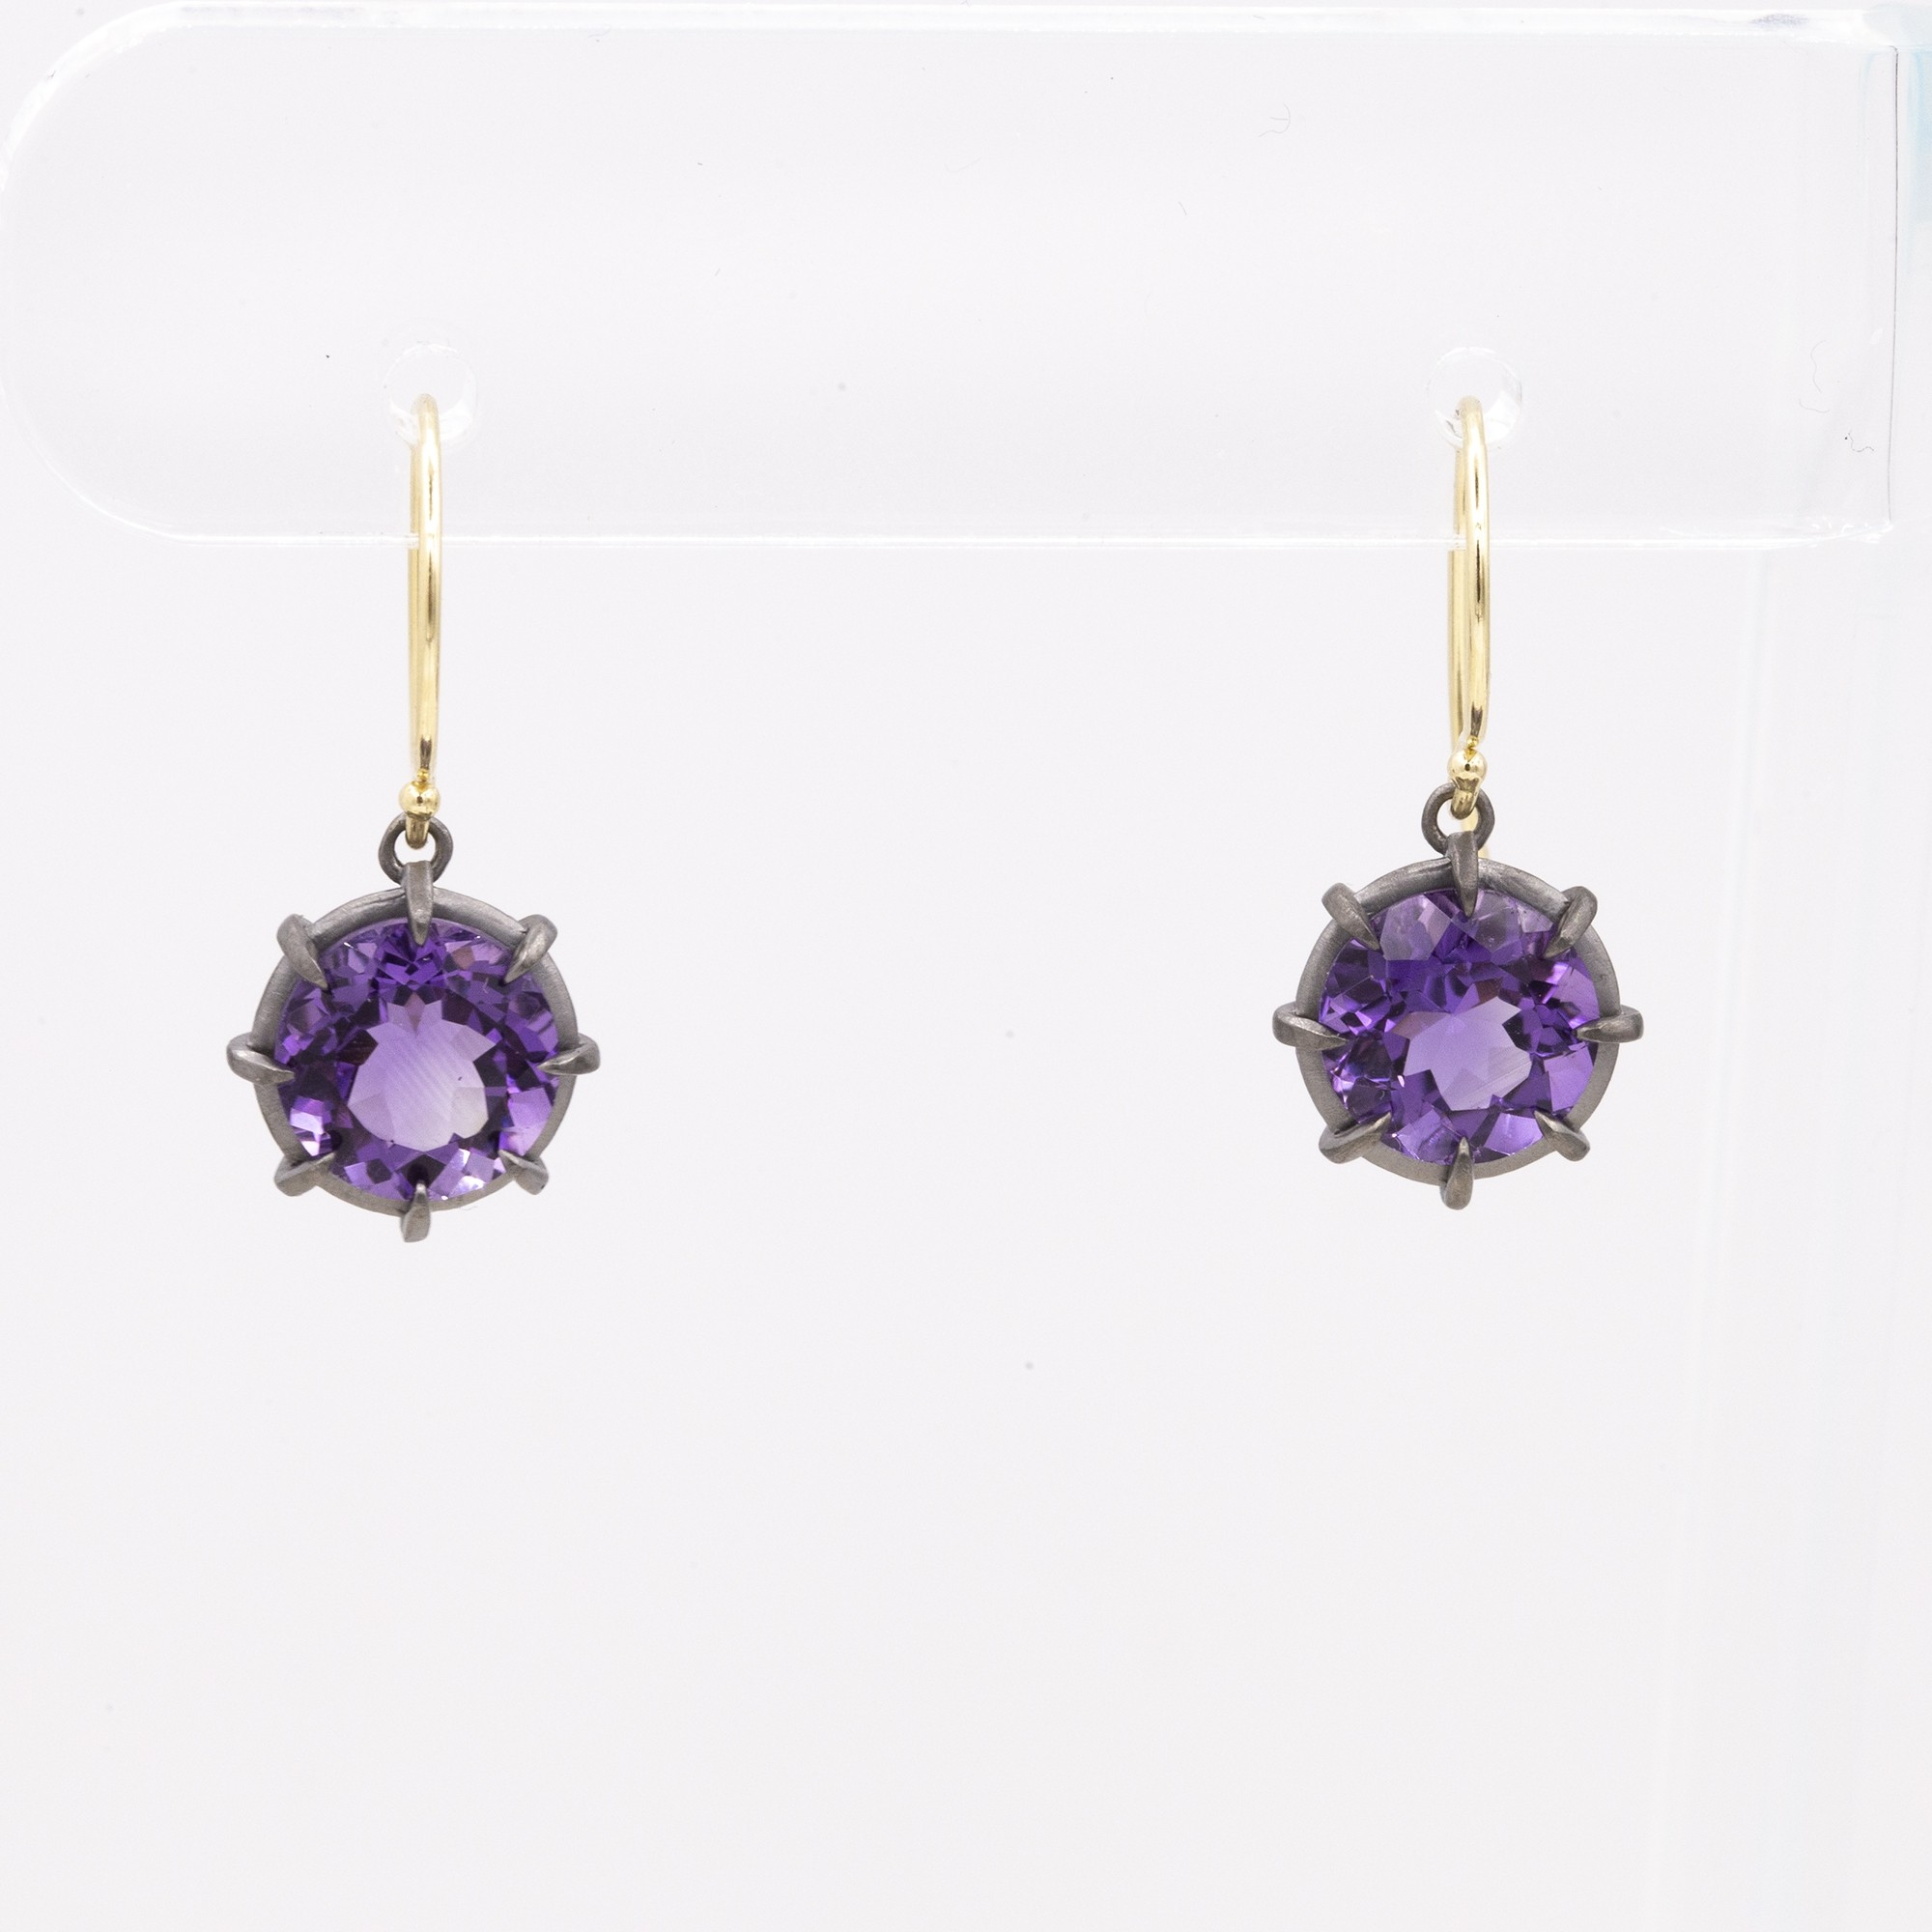 GEMMA COLLECTION AMETHYST PUSHBACK STUD EARRINGS